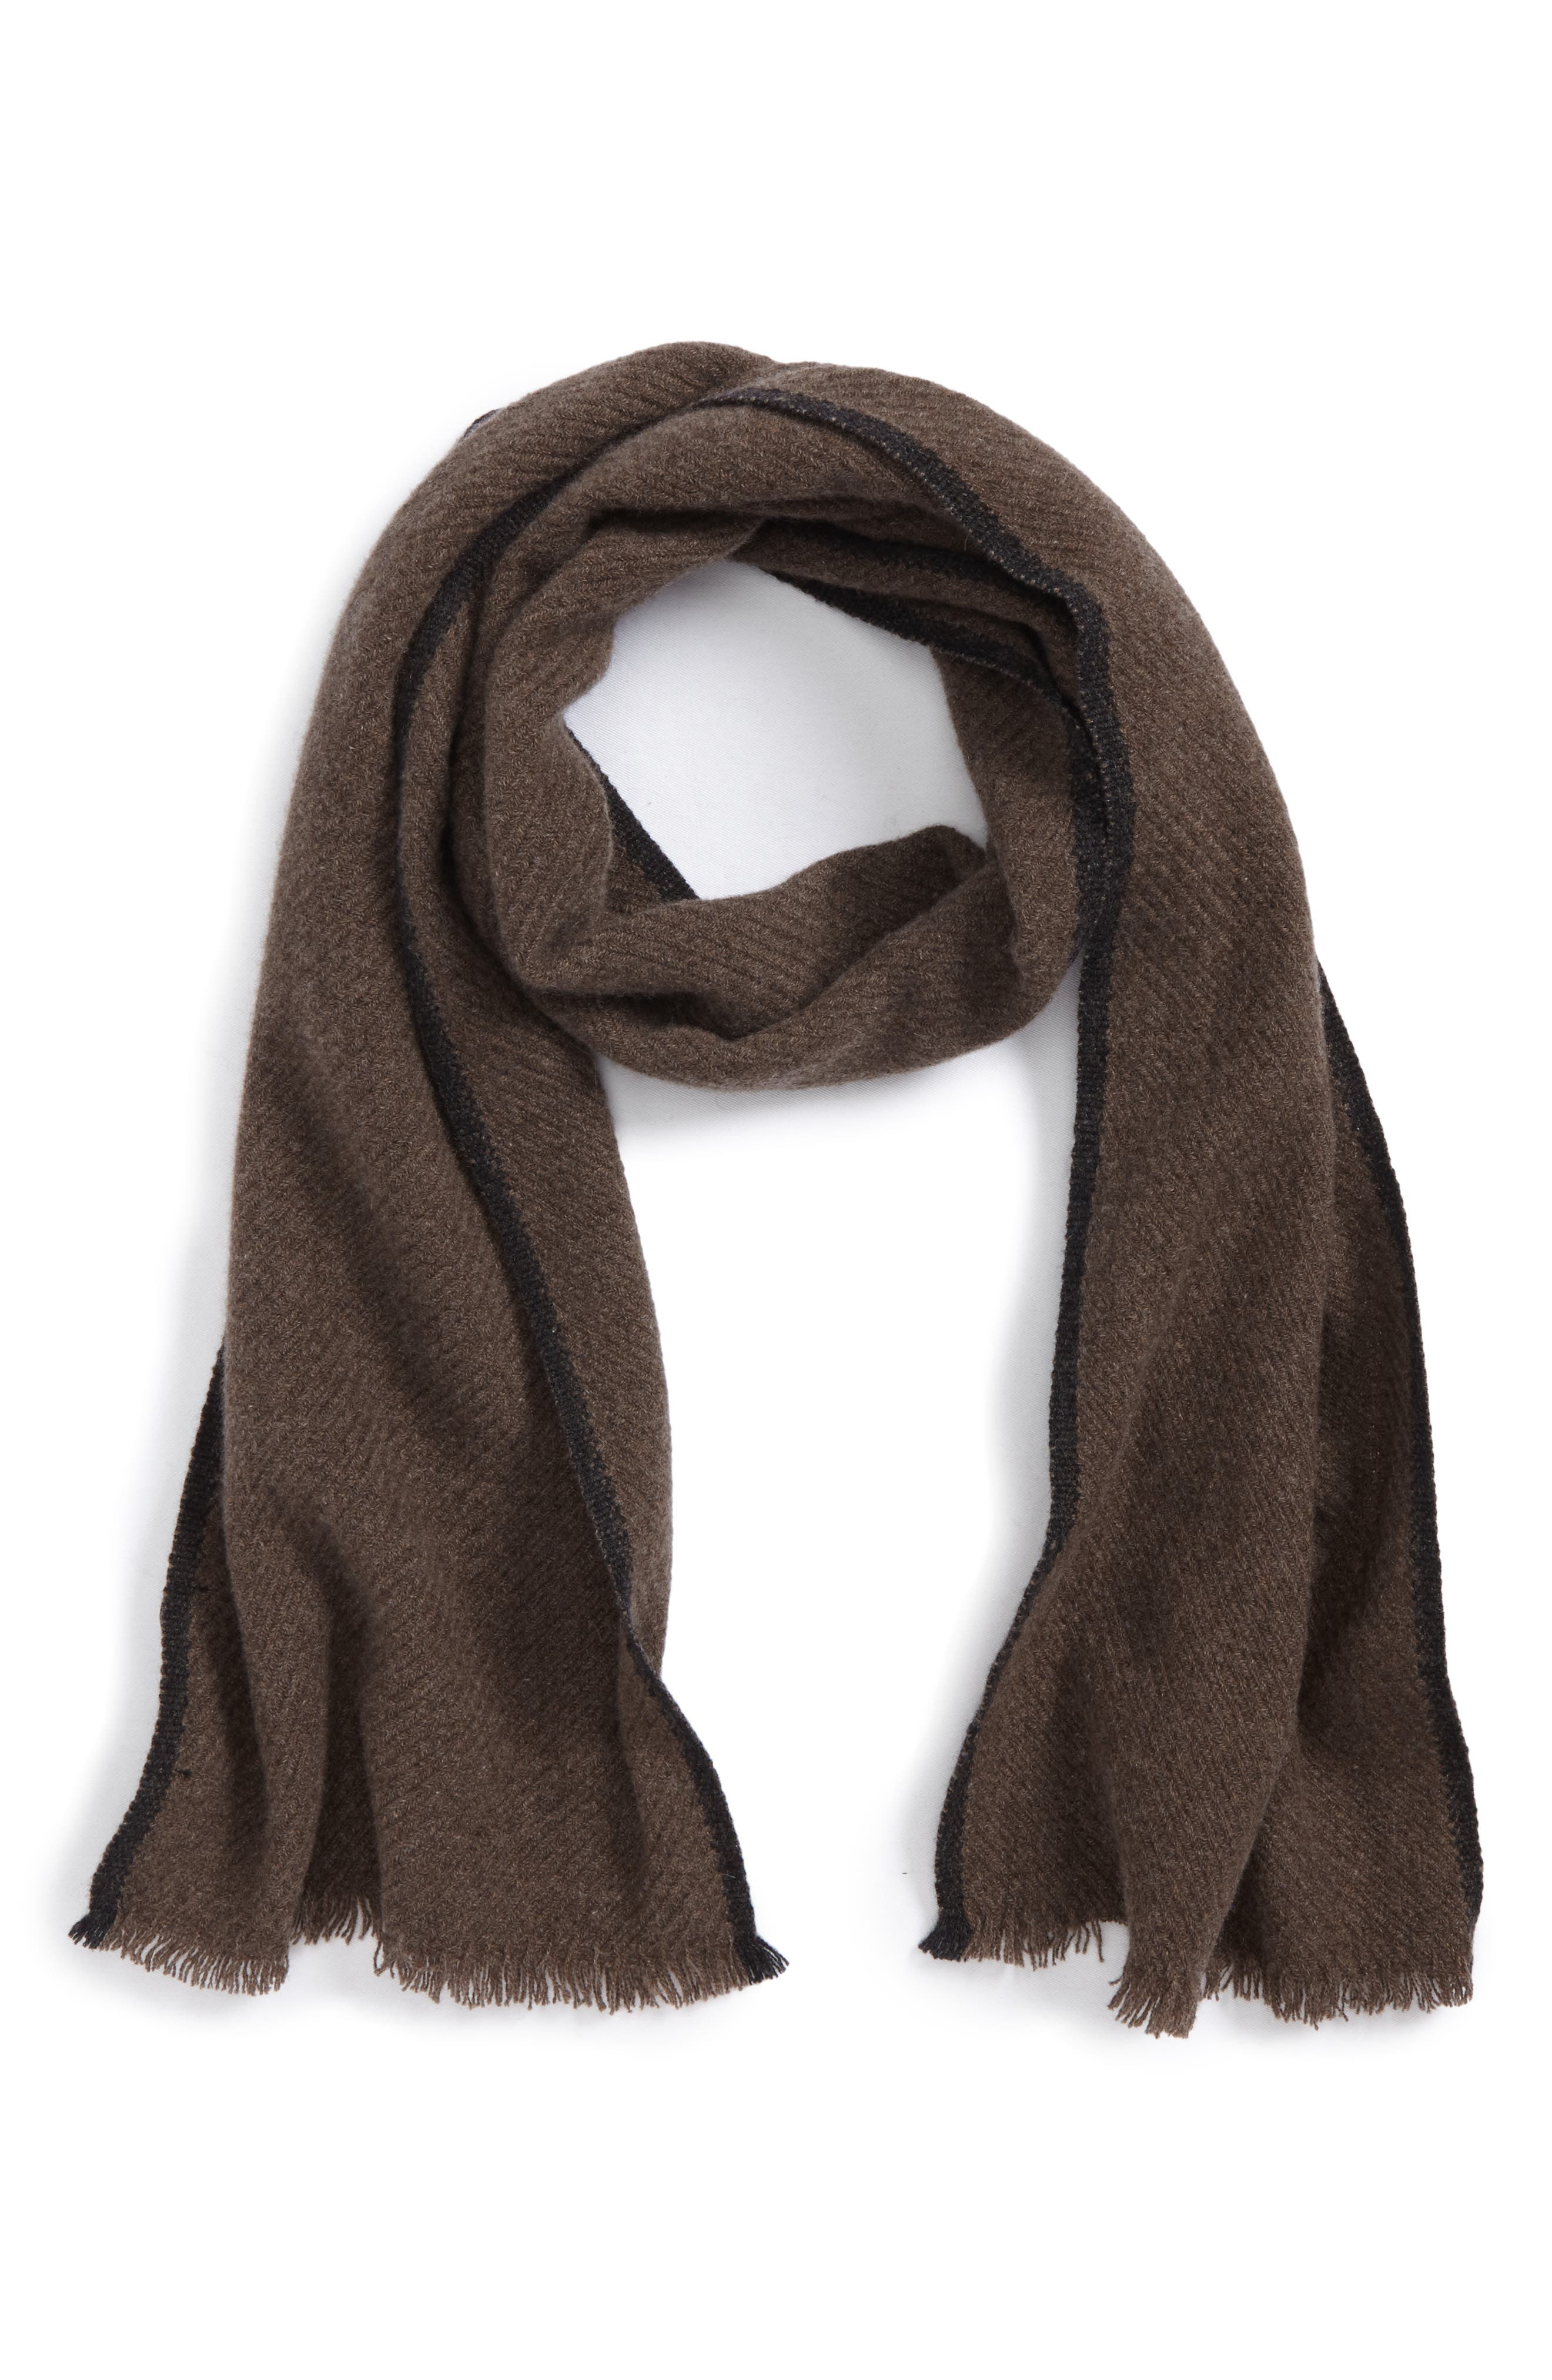 Alternate Image 1 Selected - Andrew Stewart Contrast Selvedge Cashmere Scarf